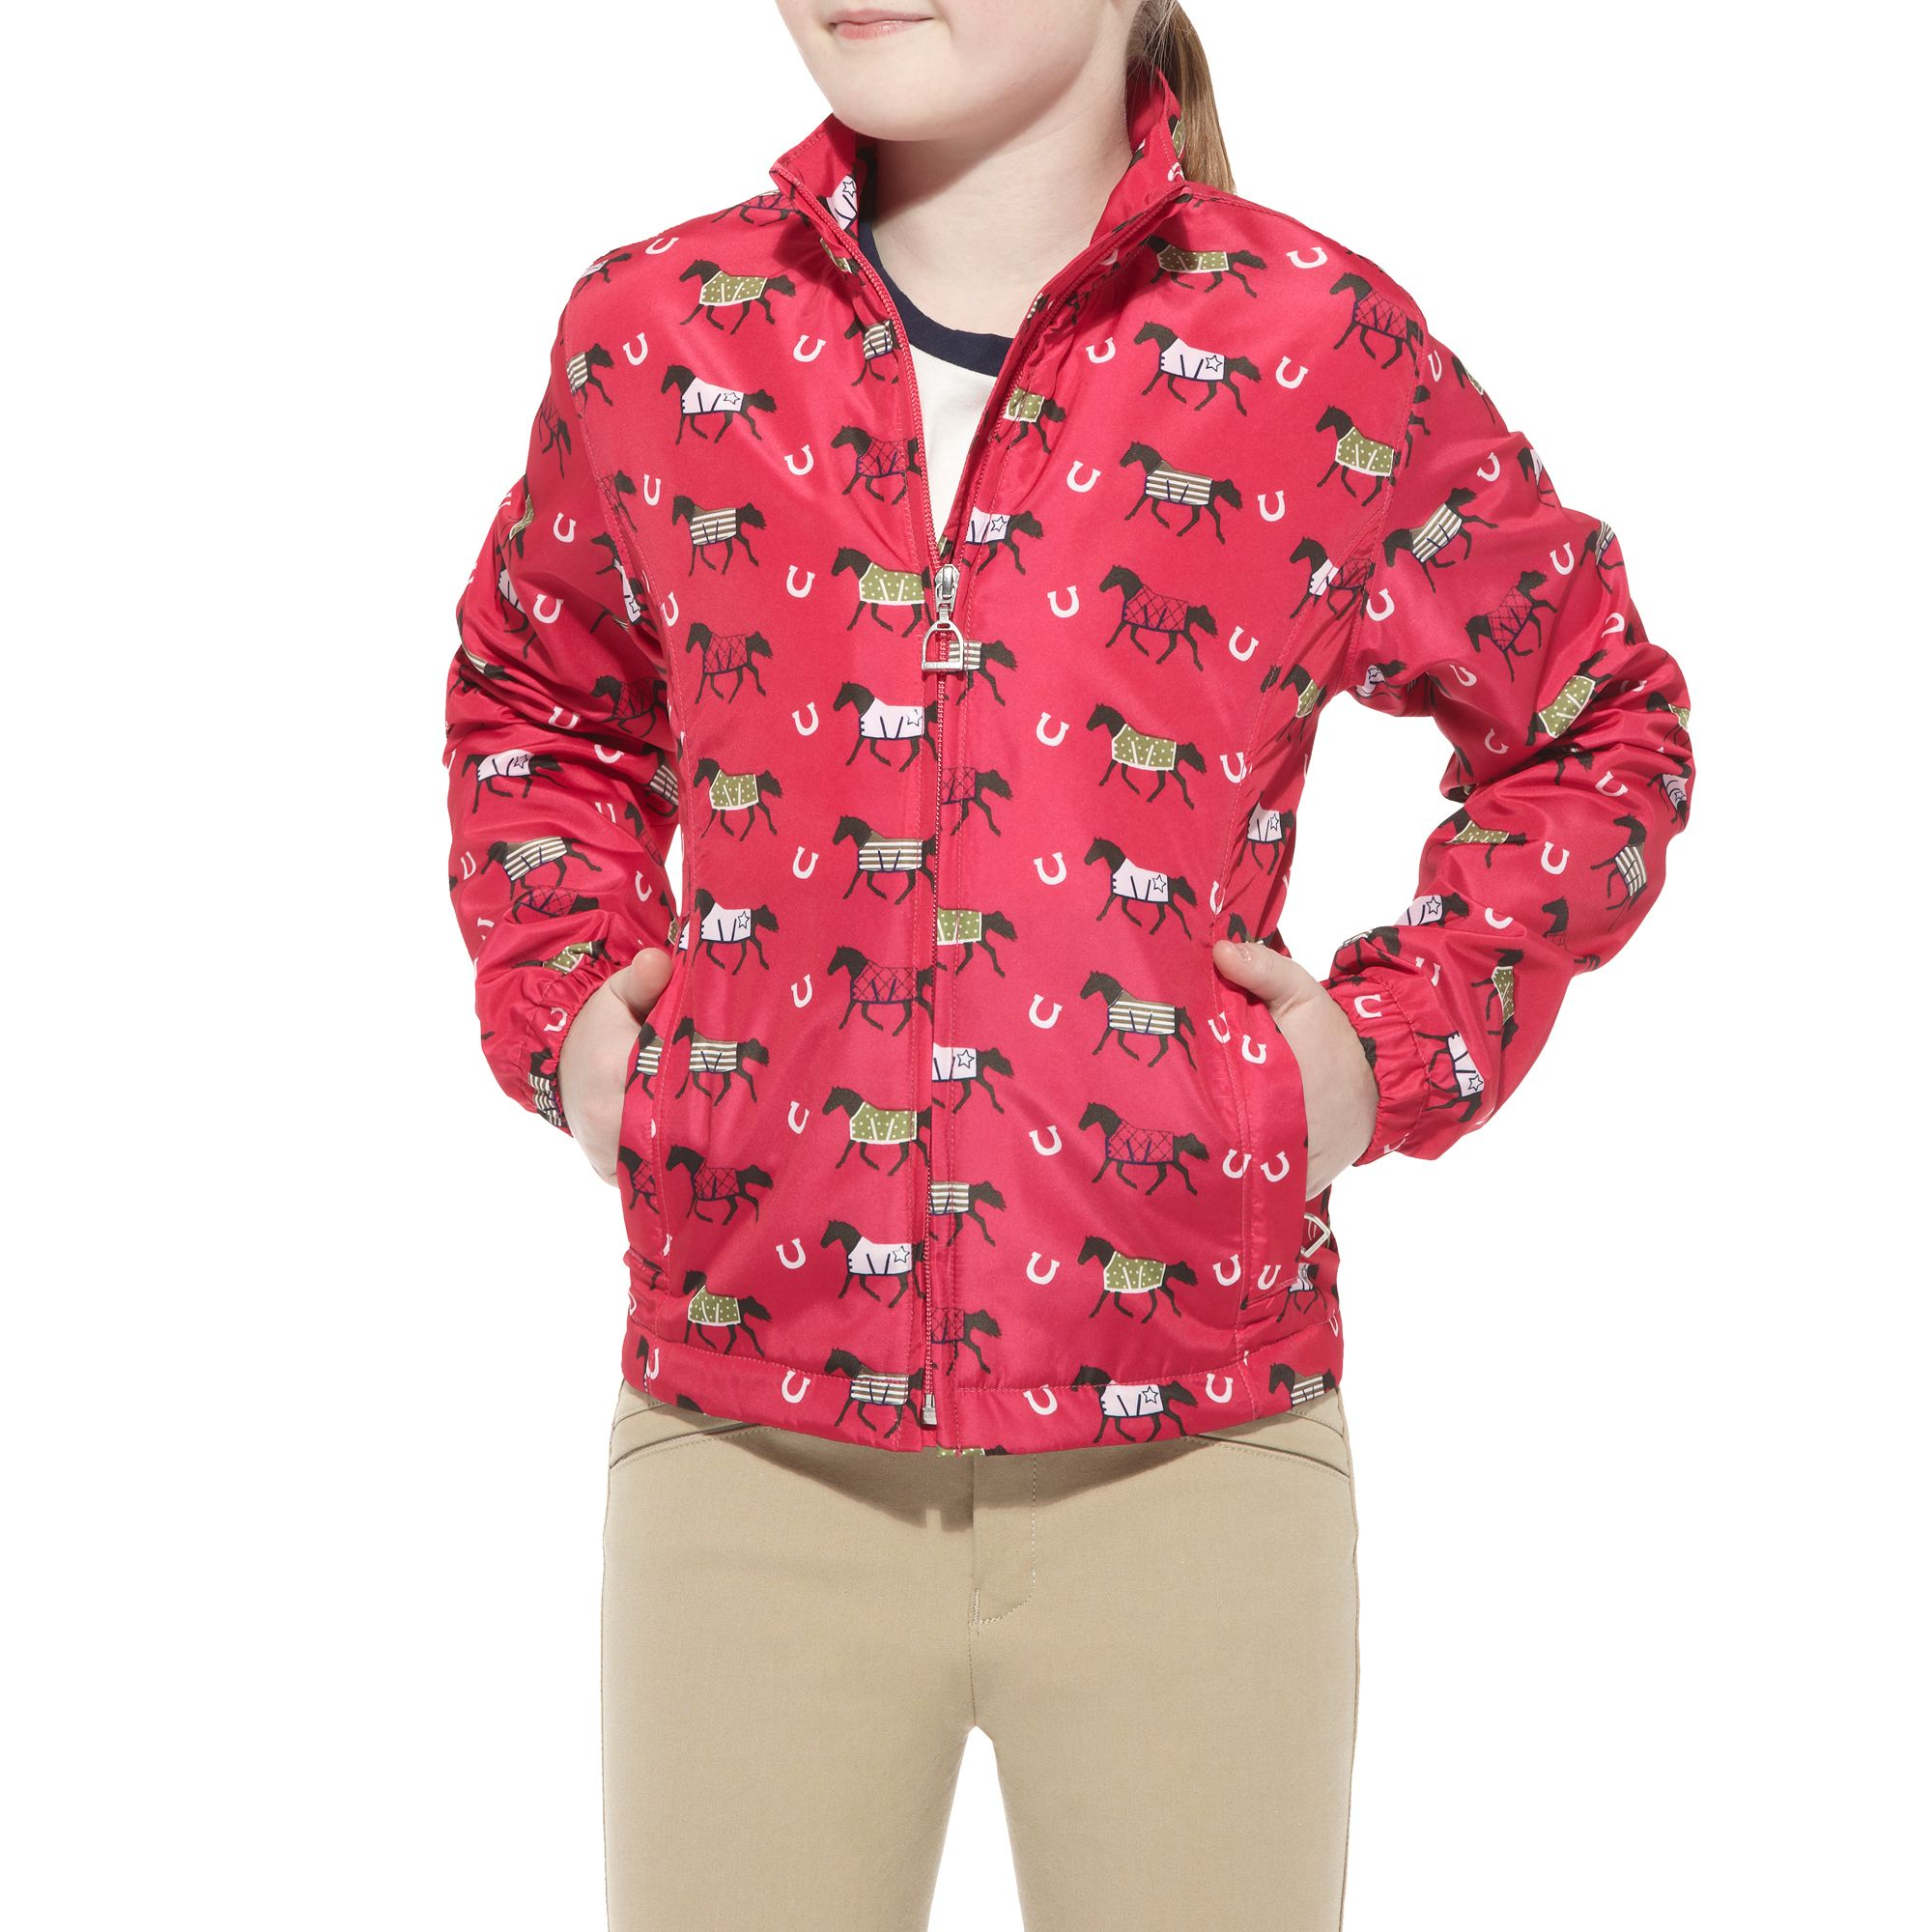 Ariat Laurel Jacket - Girls, Multi